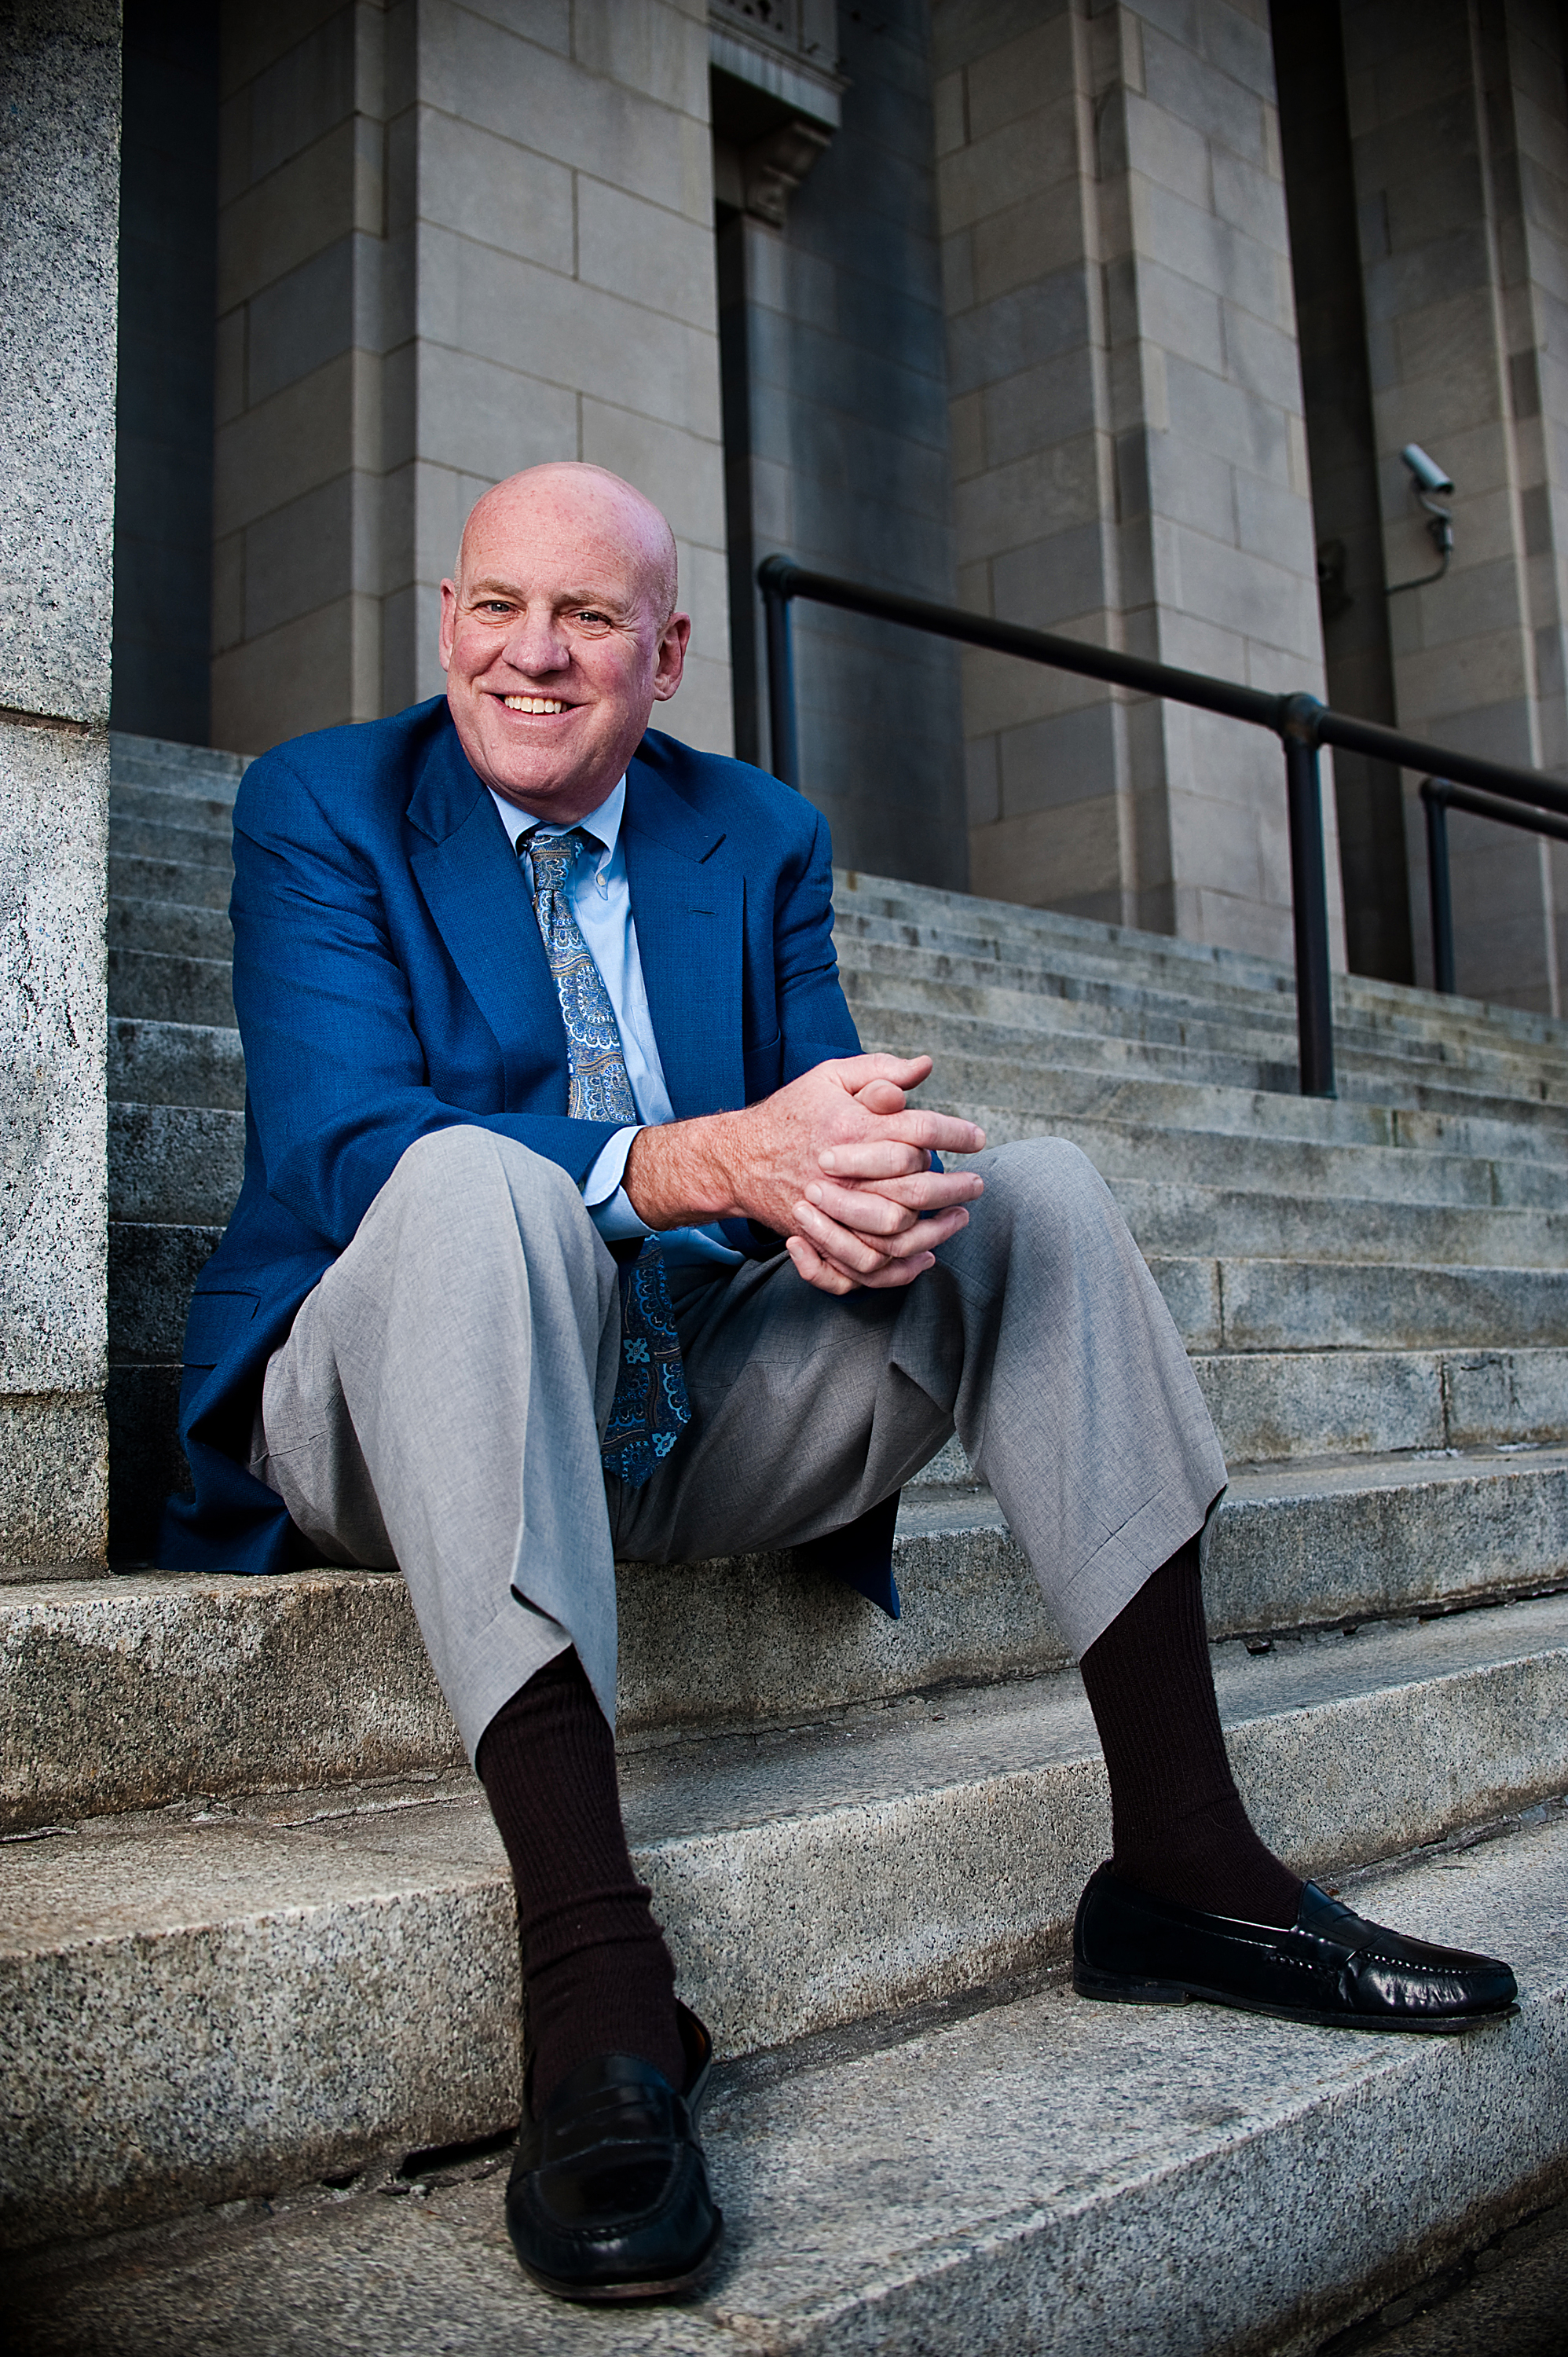 Dave Hillier sitting on the granite stairs in front of the Federal Courthouse in Downtown Asheville (United States District Court for the Western District of North Carolina, where Bankruptcy Court is housed)